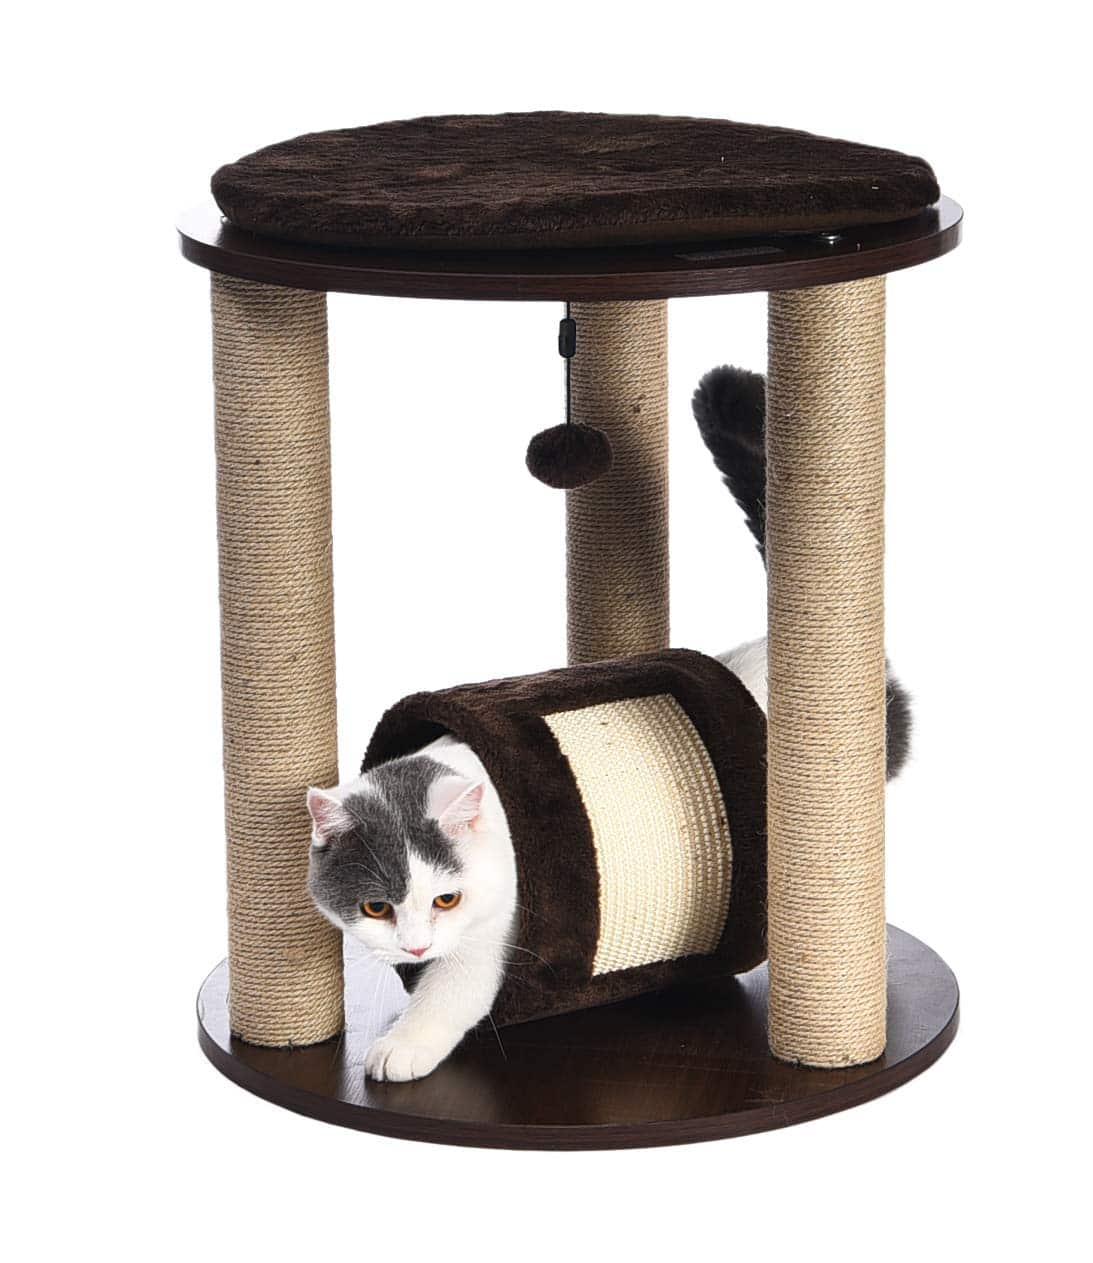 AmazonBasics Wooden Cat Furniture Triple Post Scratcher w/ Sleeping Platform $22.89 FS w/ Prime